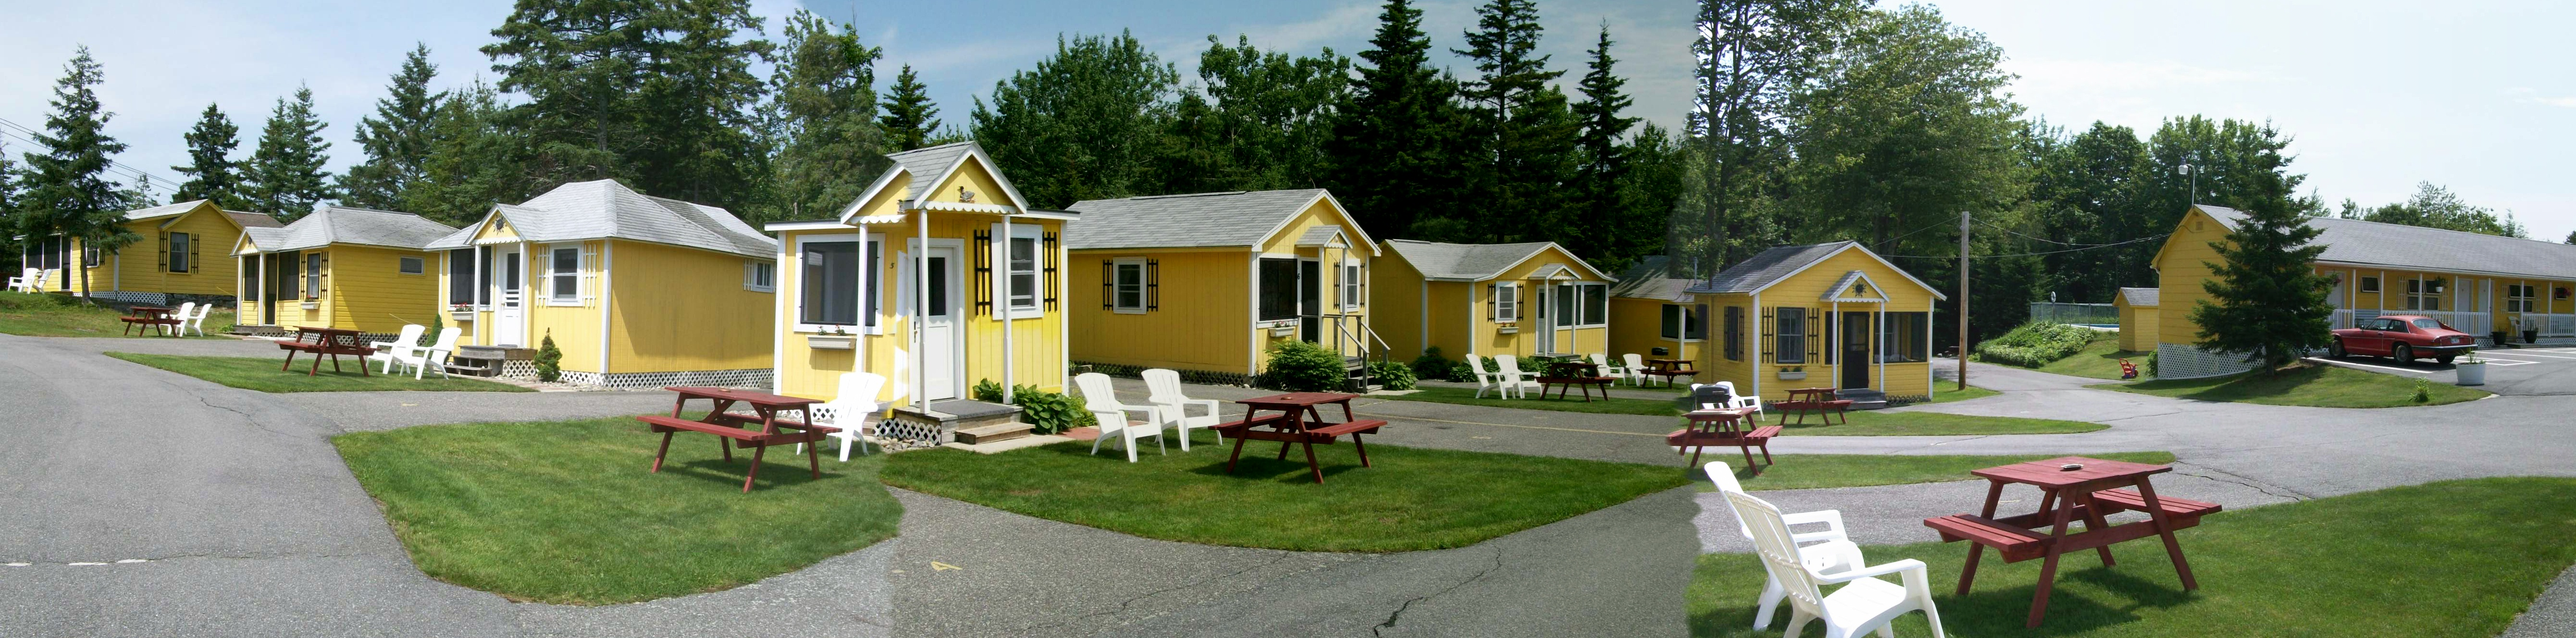 realtor realty camps home your cottages in cottage maine town dewitt jones